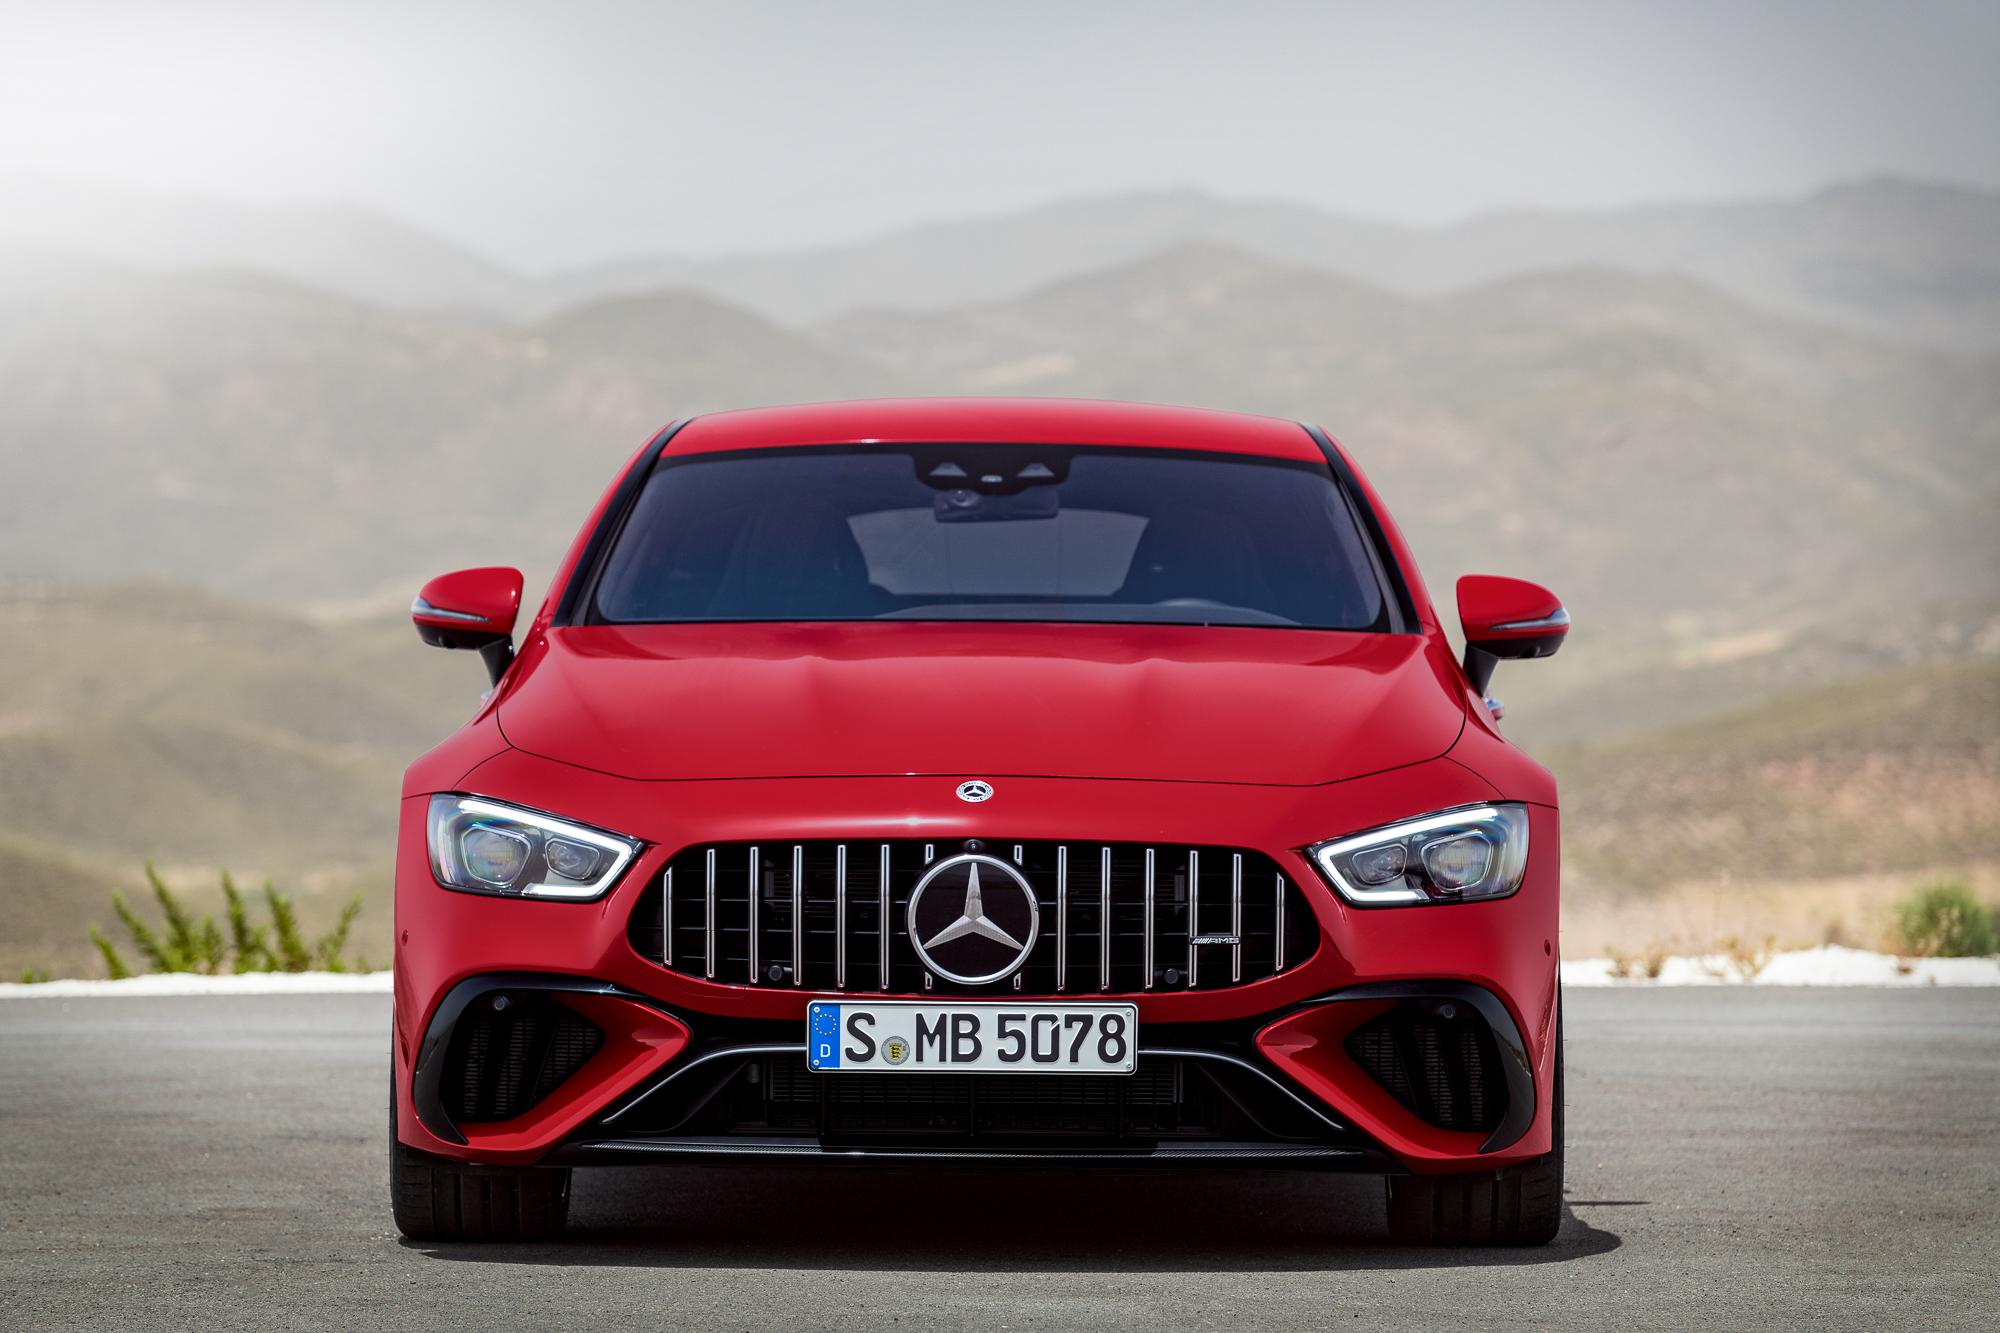 2023-Mercedes-AMG-GT-63-S-E-Performance front